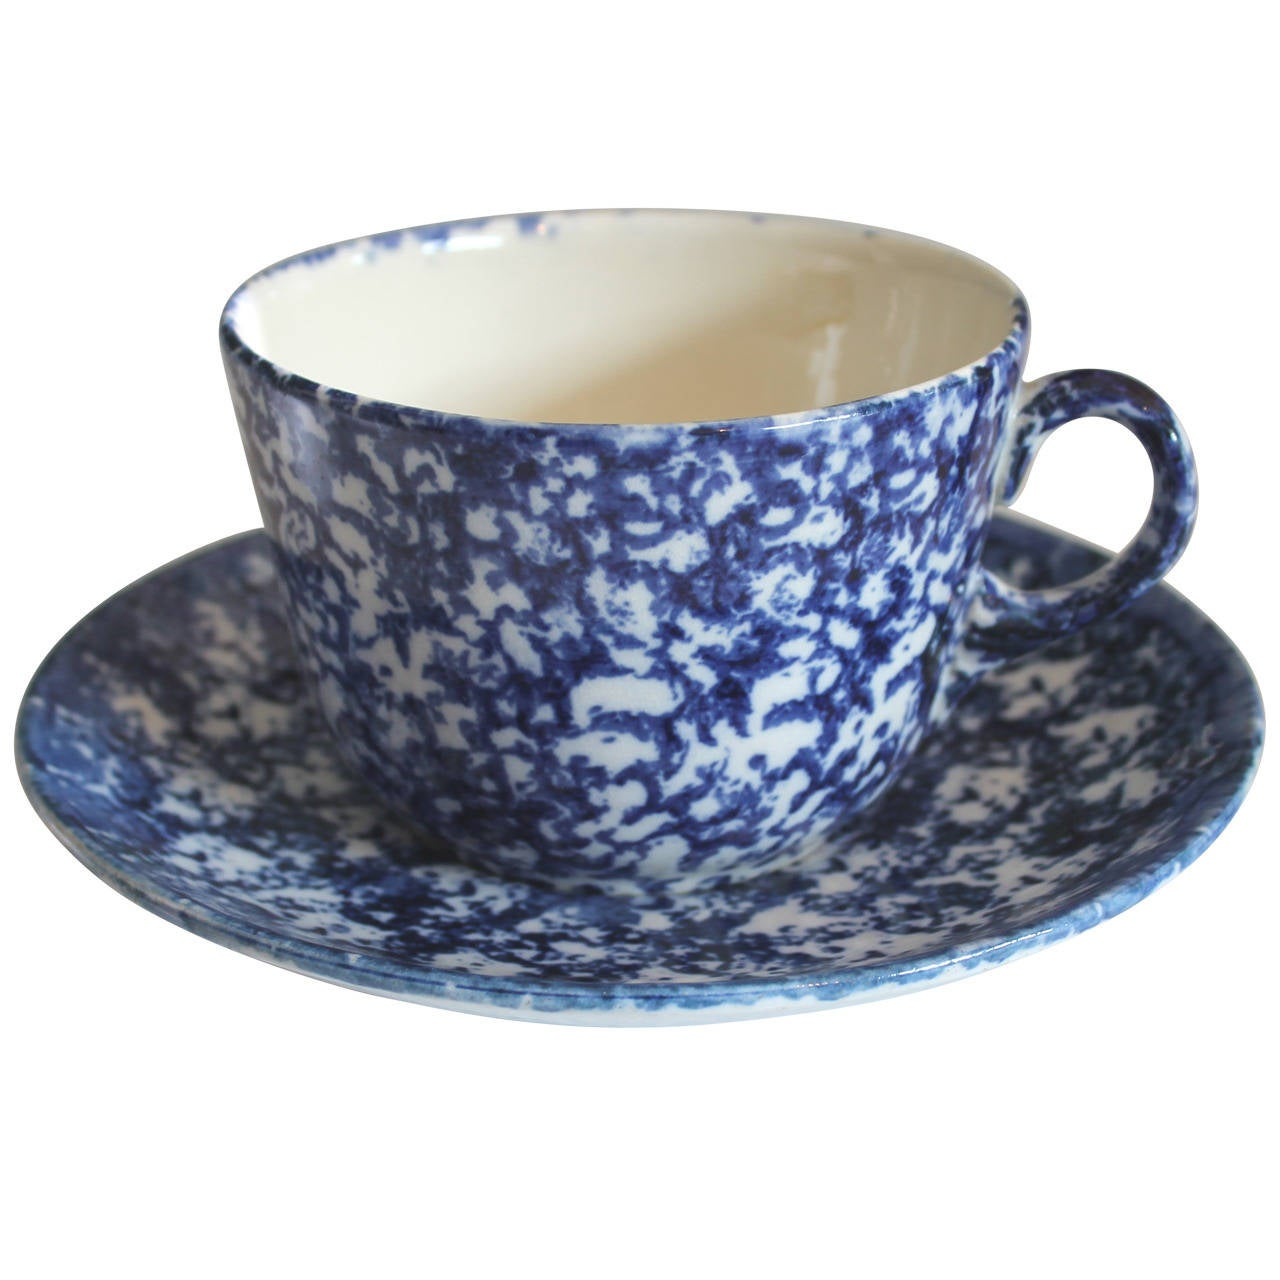 Large 19th Century Spongeware Mush Cup and Saucer